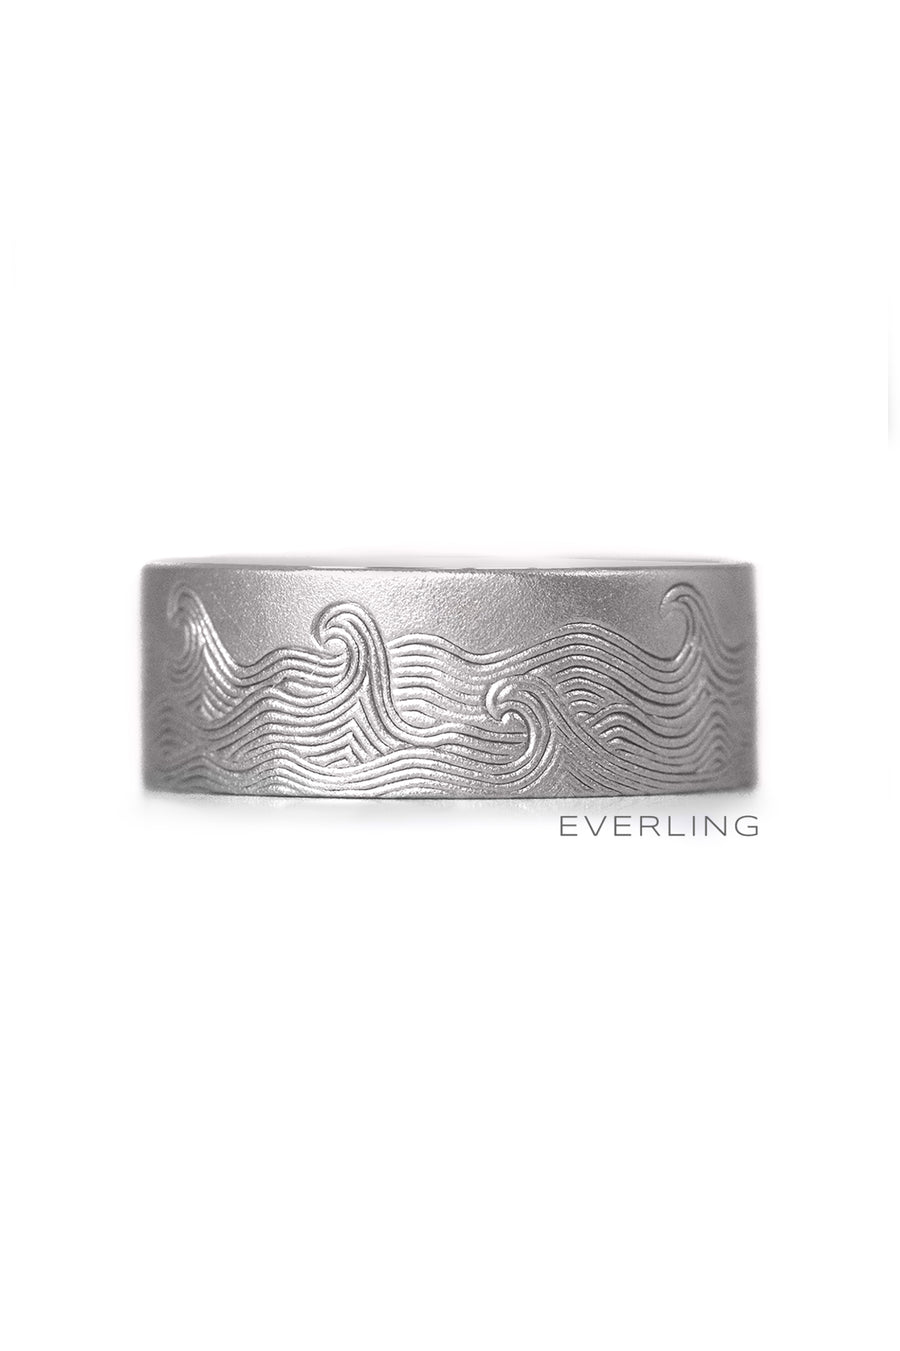 Recycled 14k palladium white gold 8mm band with hand engraved wave pattern. wwwEverlingJewelry.com